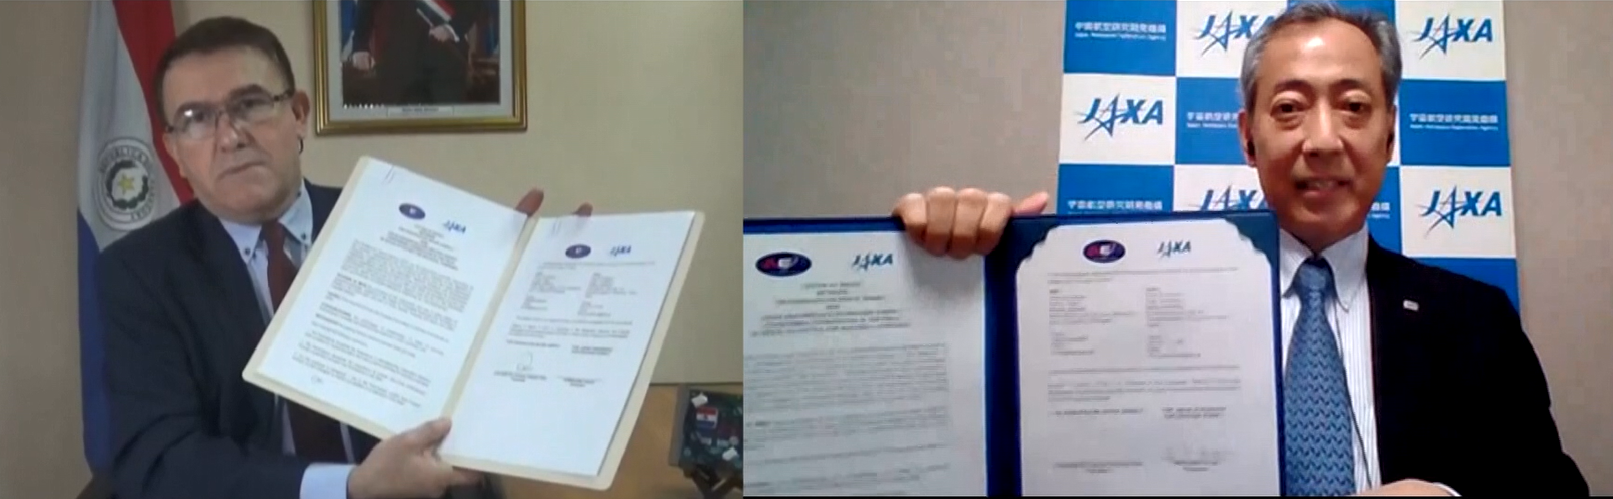 JAXA and AEP Sign Letter of Intent